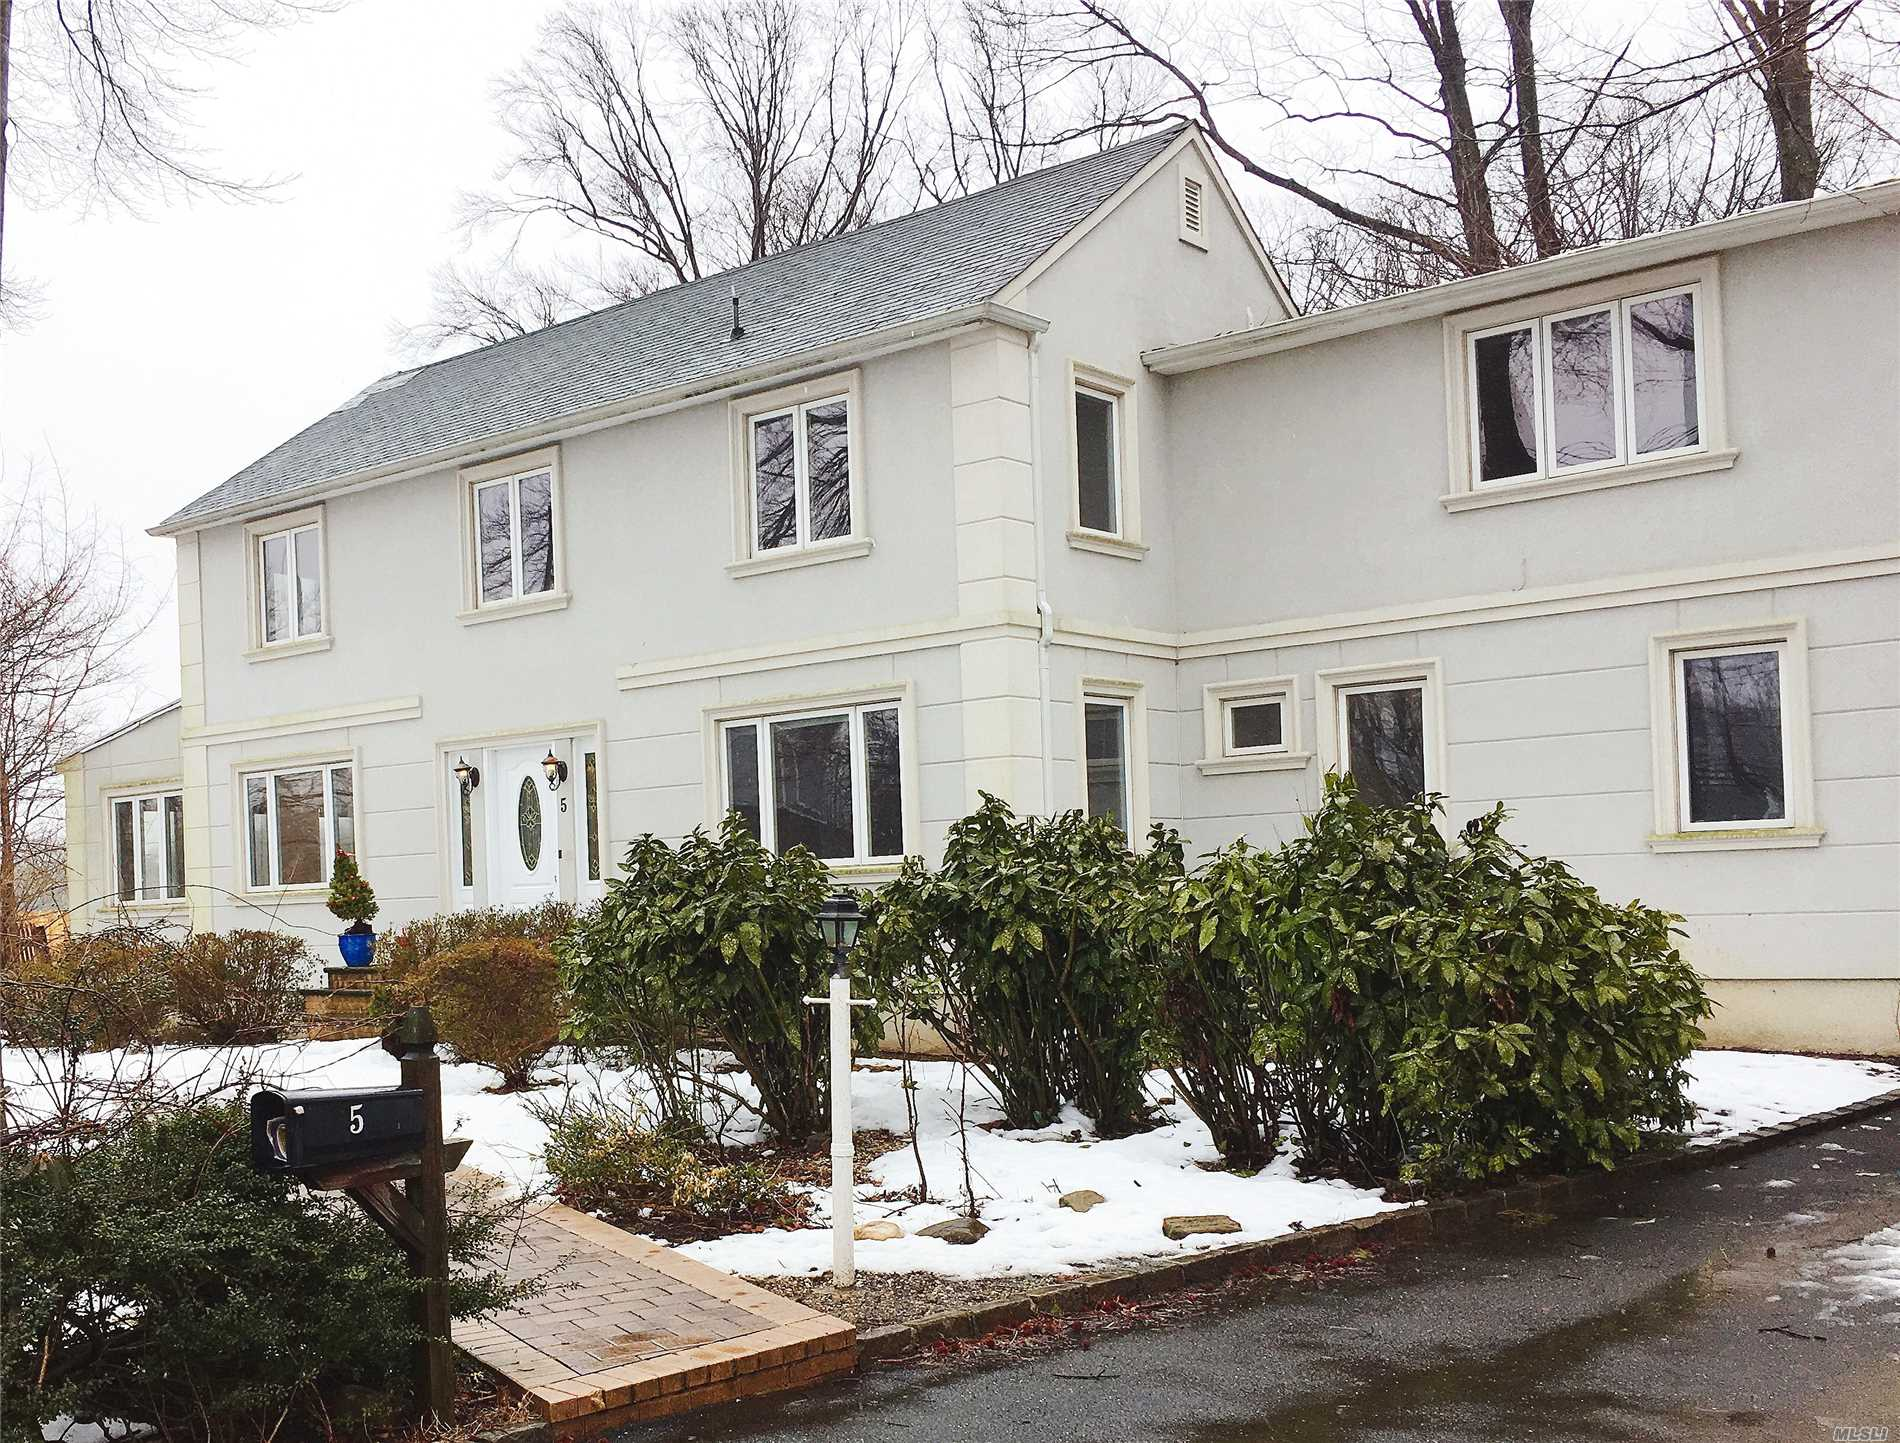 Beautiful Fully Renovated Stucco Colonial. Lots of window with natural light. Large deck overlooks private backyard, steps away from SteppingStone Waterfront Park. Walk to the bus stop. bus N20 to Flushing. Only 20 min on the train to Manhattan. Easy access to Nothern Blvd.